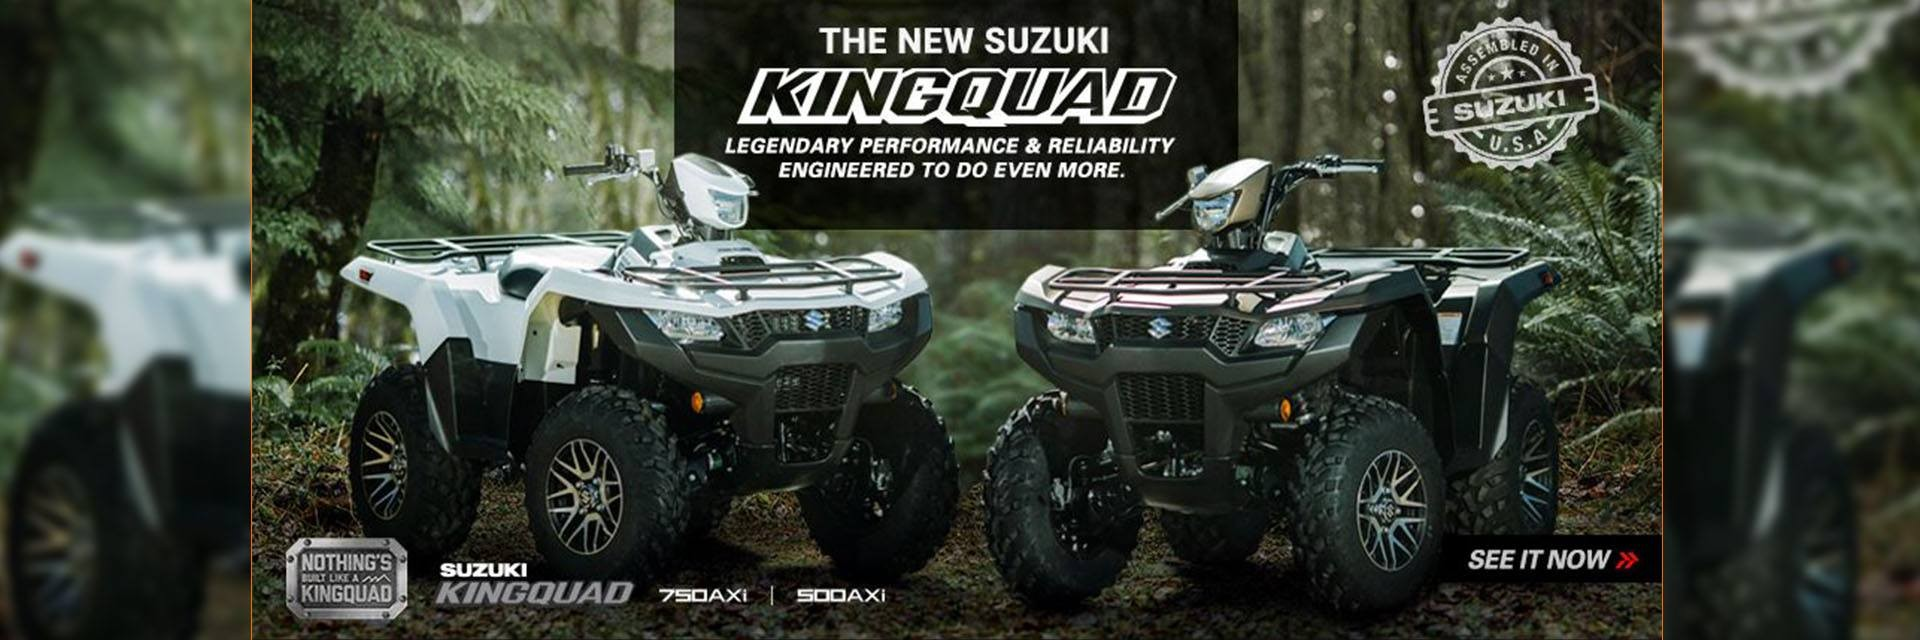 The All New Suzuki KingQuad Available at Waynesburg Yamaha